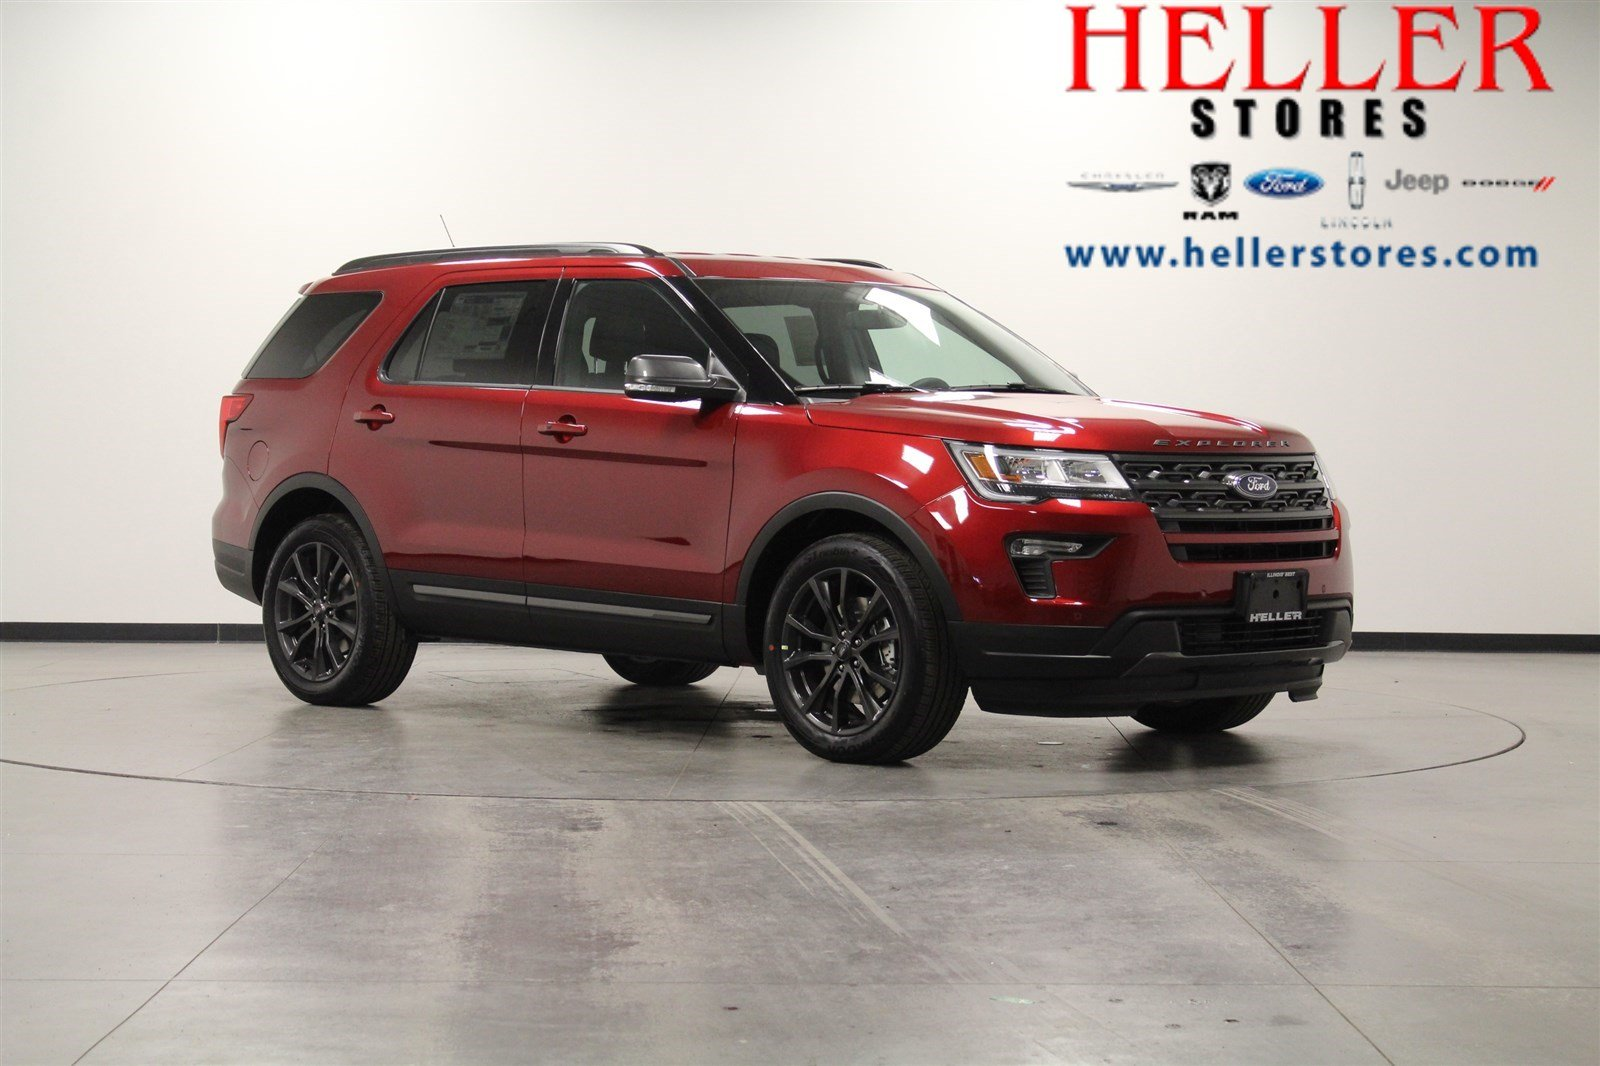 Heller Ford El Paso Il >> New 2018 Ford Explorer XLT SUV in El Paso #1800152 | Heller Ford